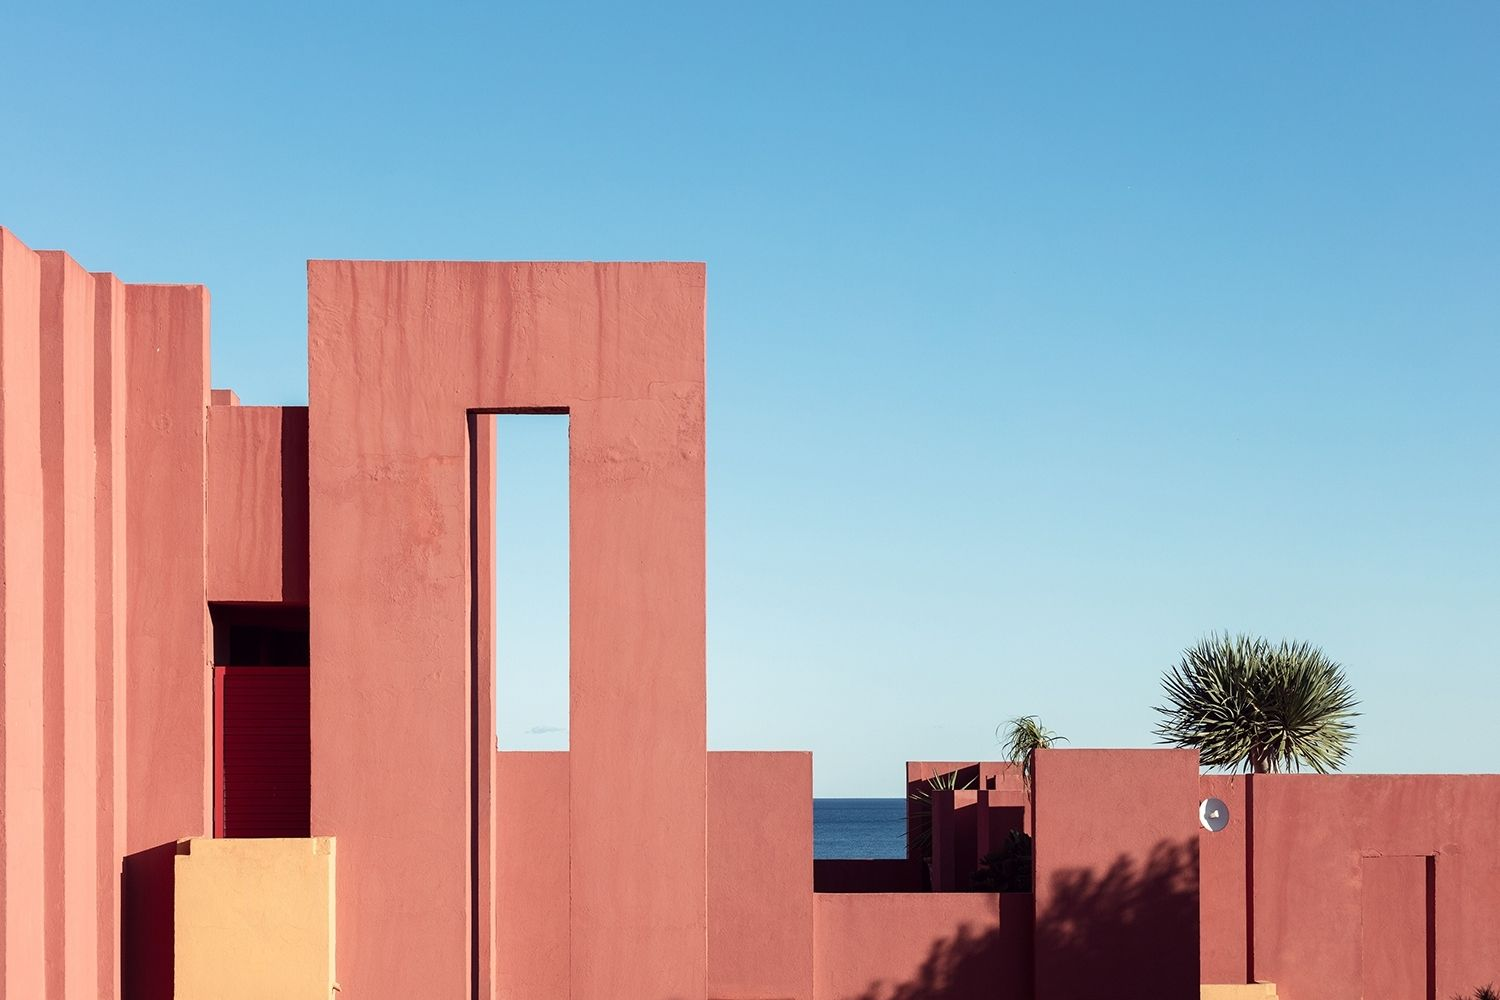 best award winning architecture photo the red wall by sebastian weiss